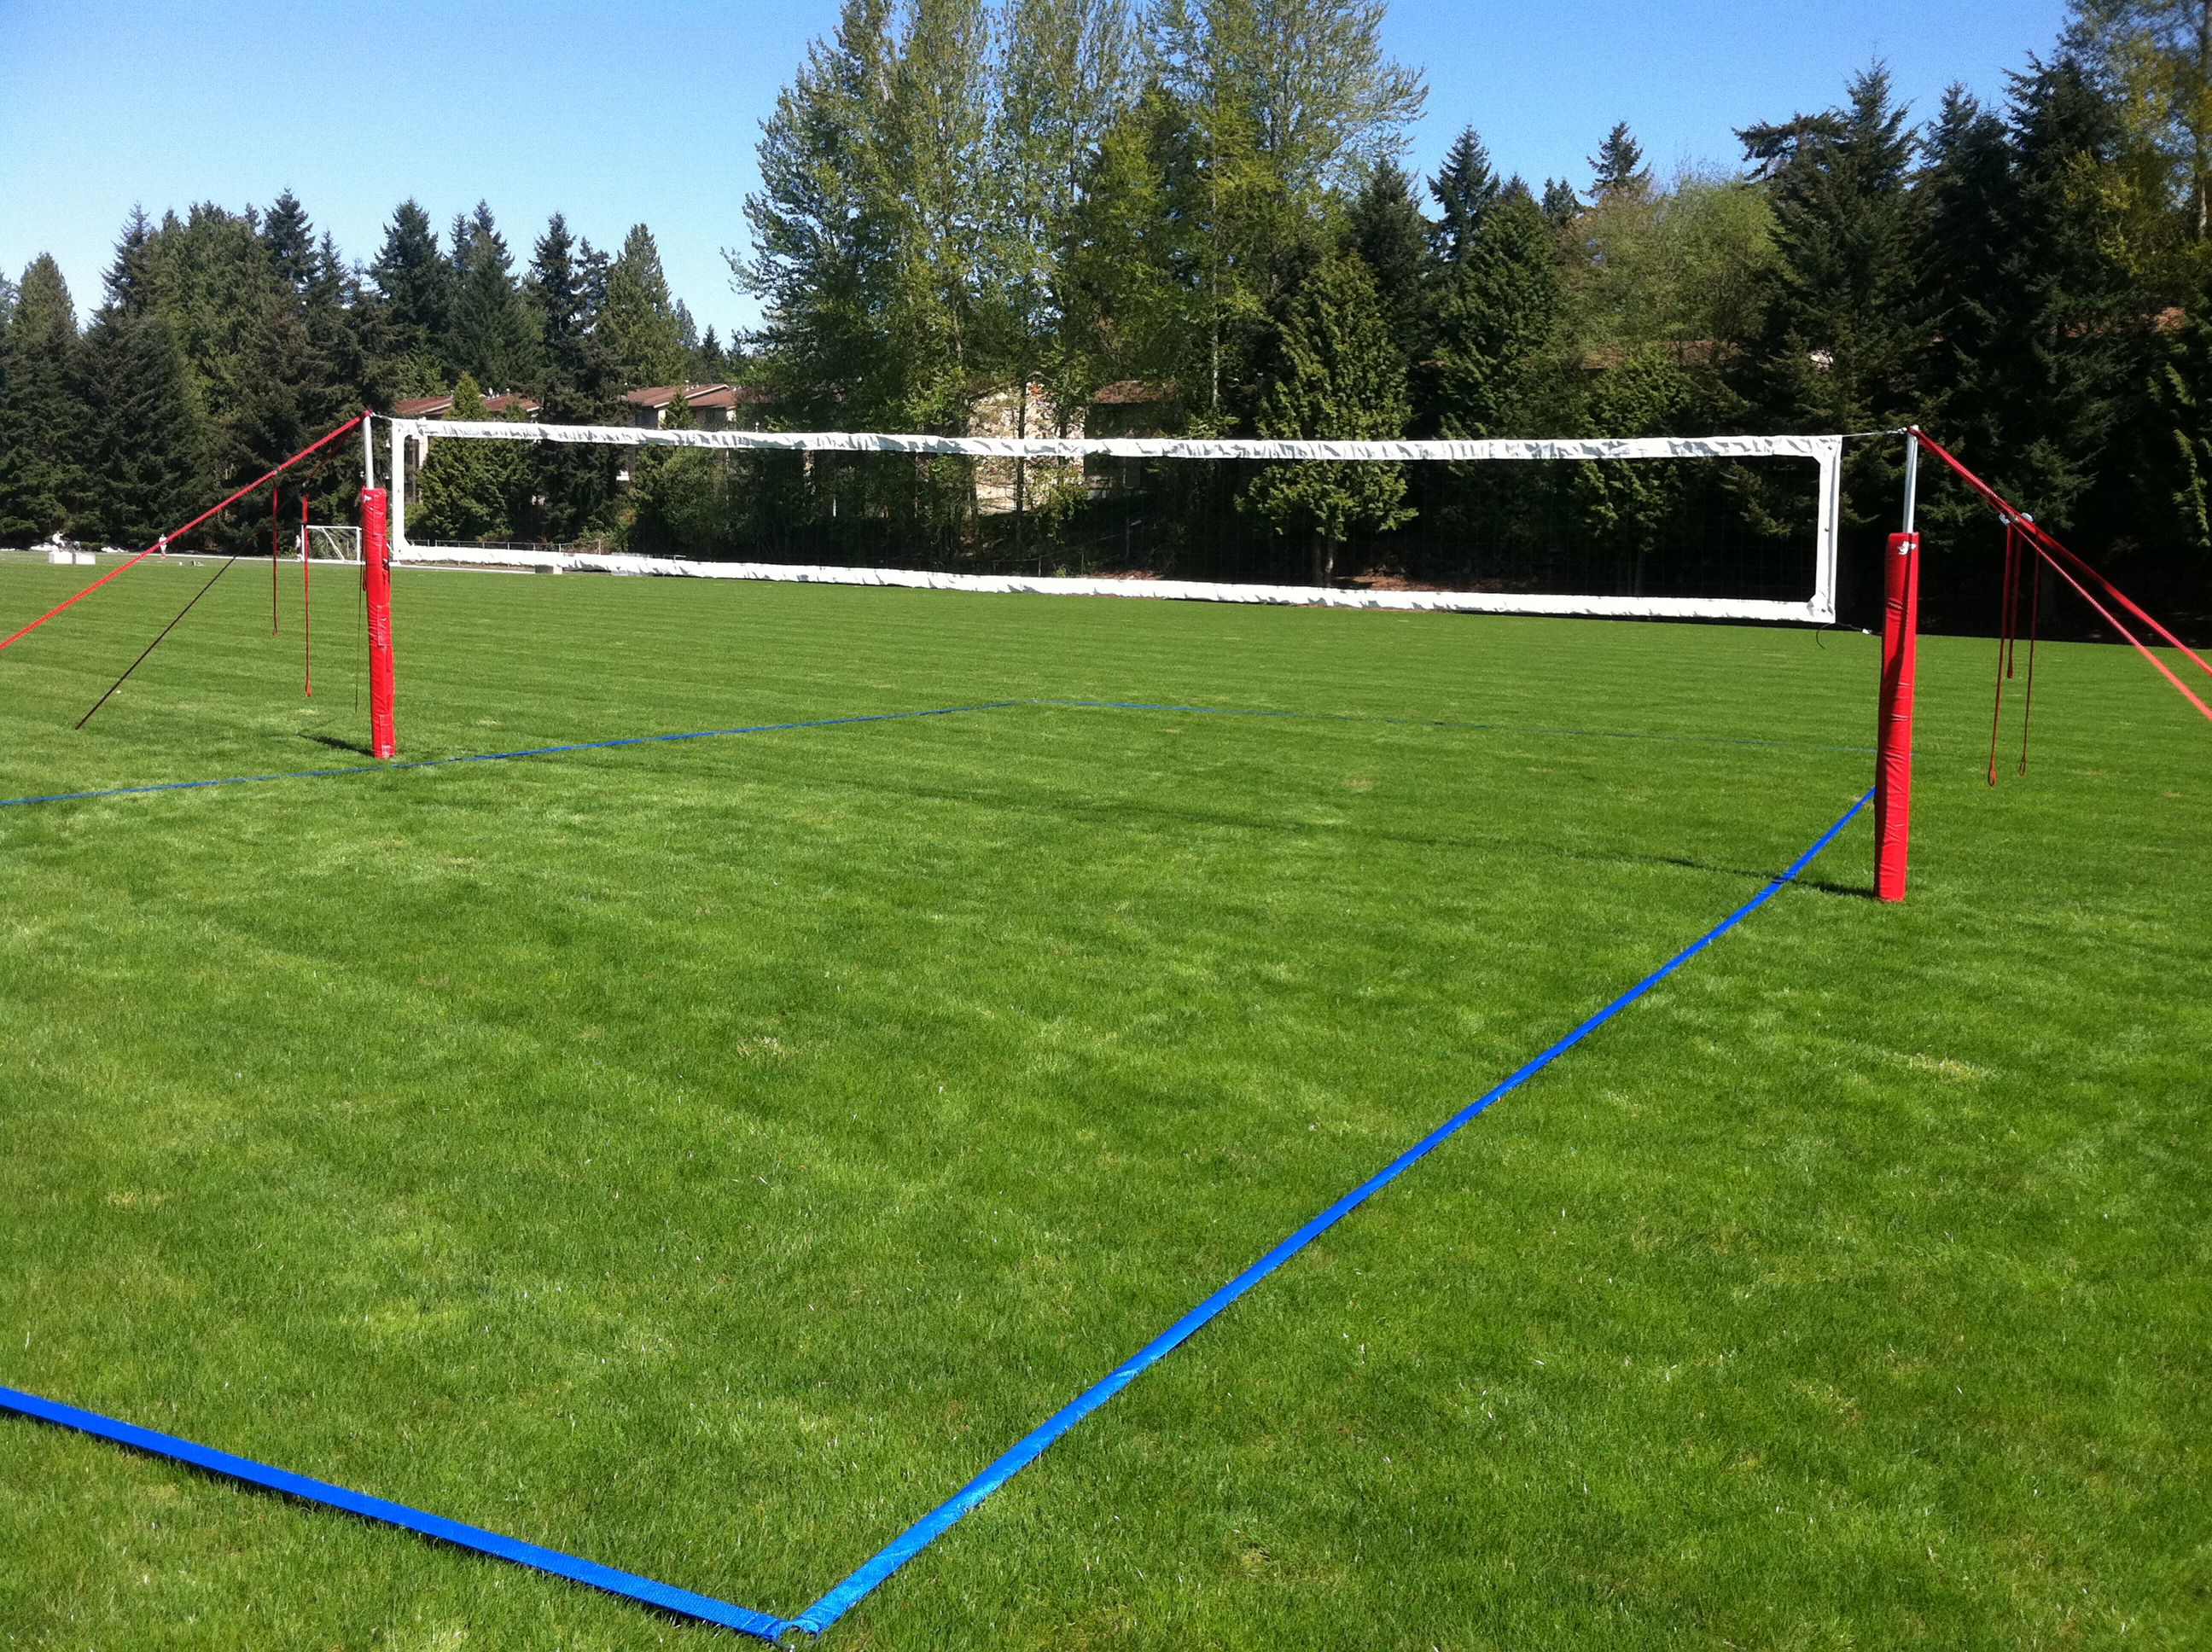 How To Construct A Grass Artificial Turf Volleyball Court Volleyball Court Backyard Volleyball Set Home Basketball Court